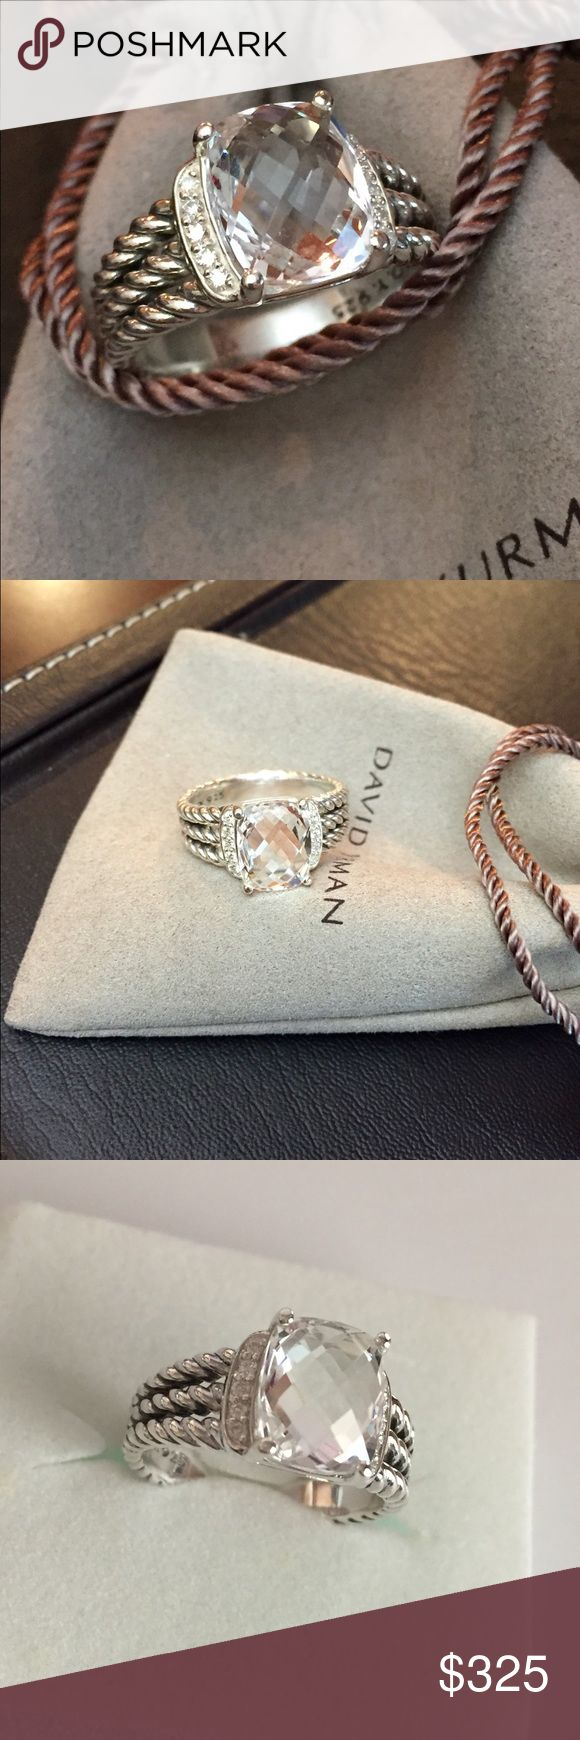 David Yurman petite Wheaton ring with white topaz Authentic David Yurman petite Wheaton ring with white topaz and diamonds 10x8mm size 6 no pouch Pouch sold separately gorgeous ring Sterling silver very rare color David Yurman Jewelry Rings